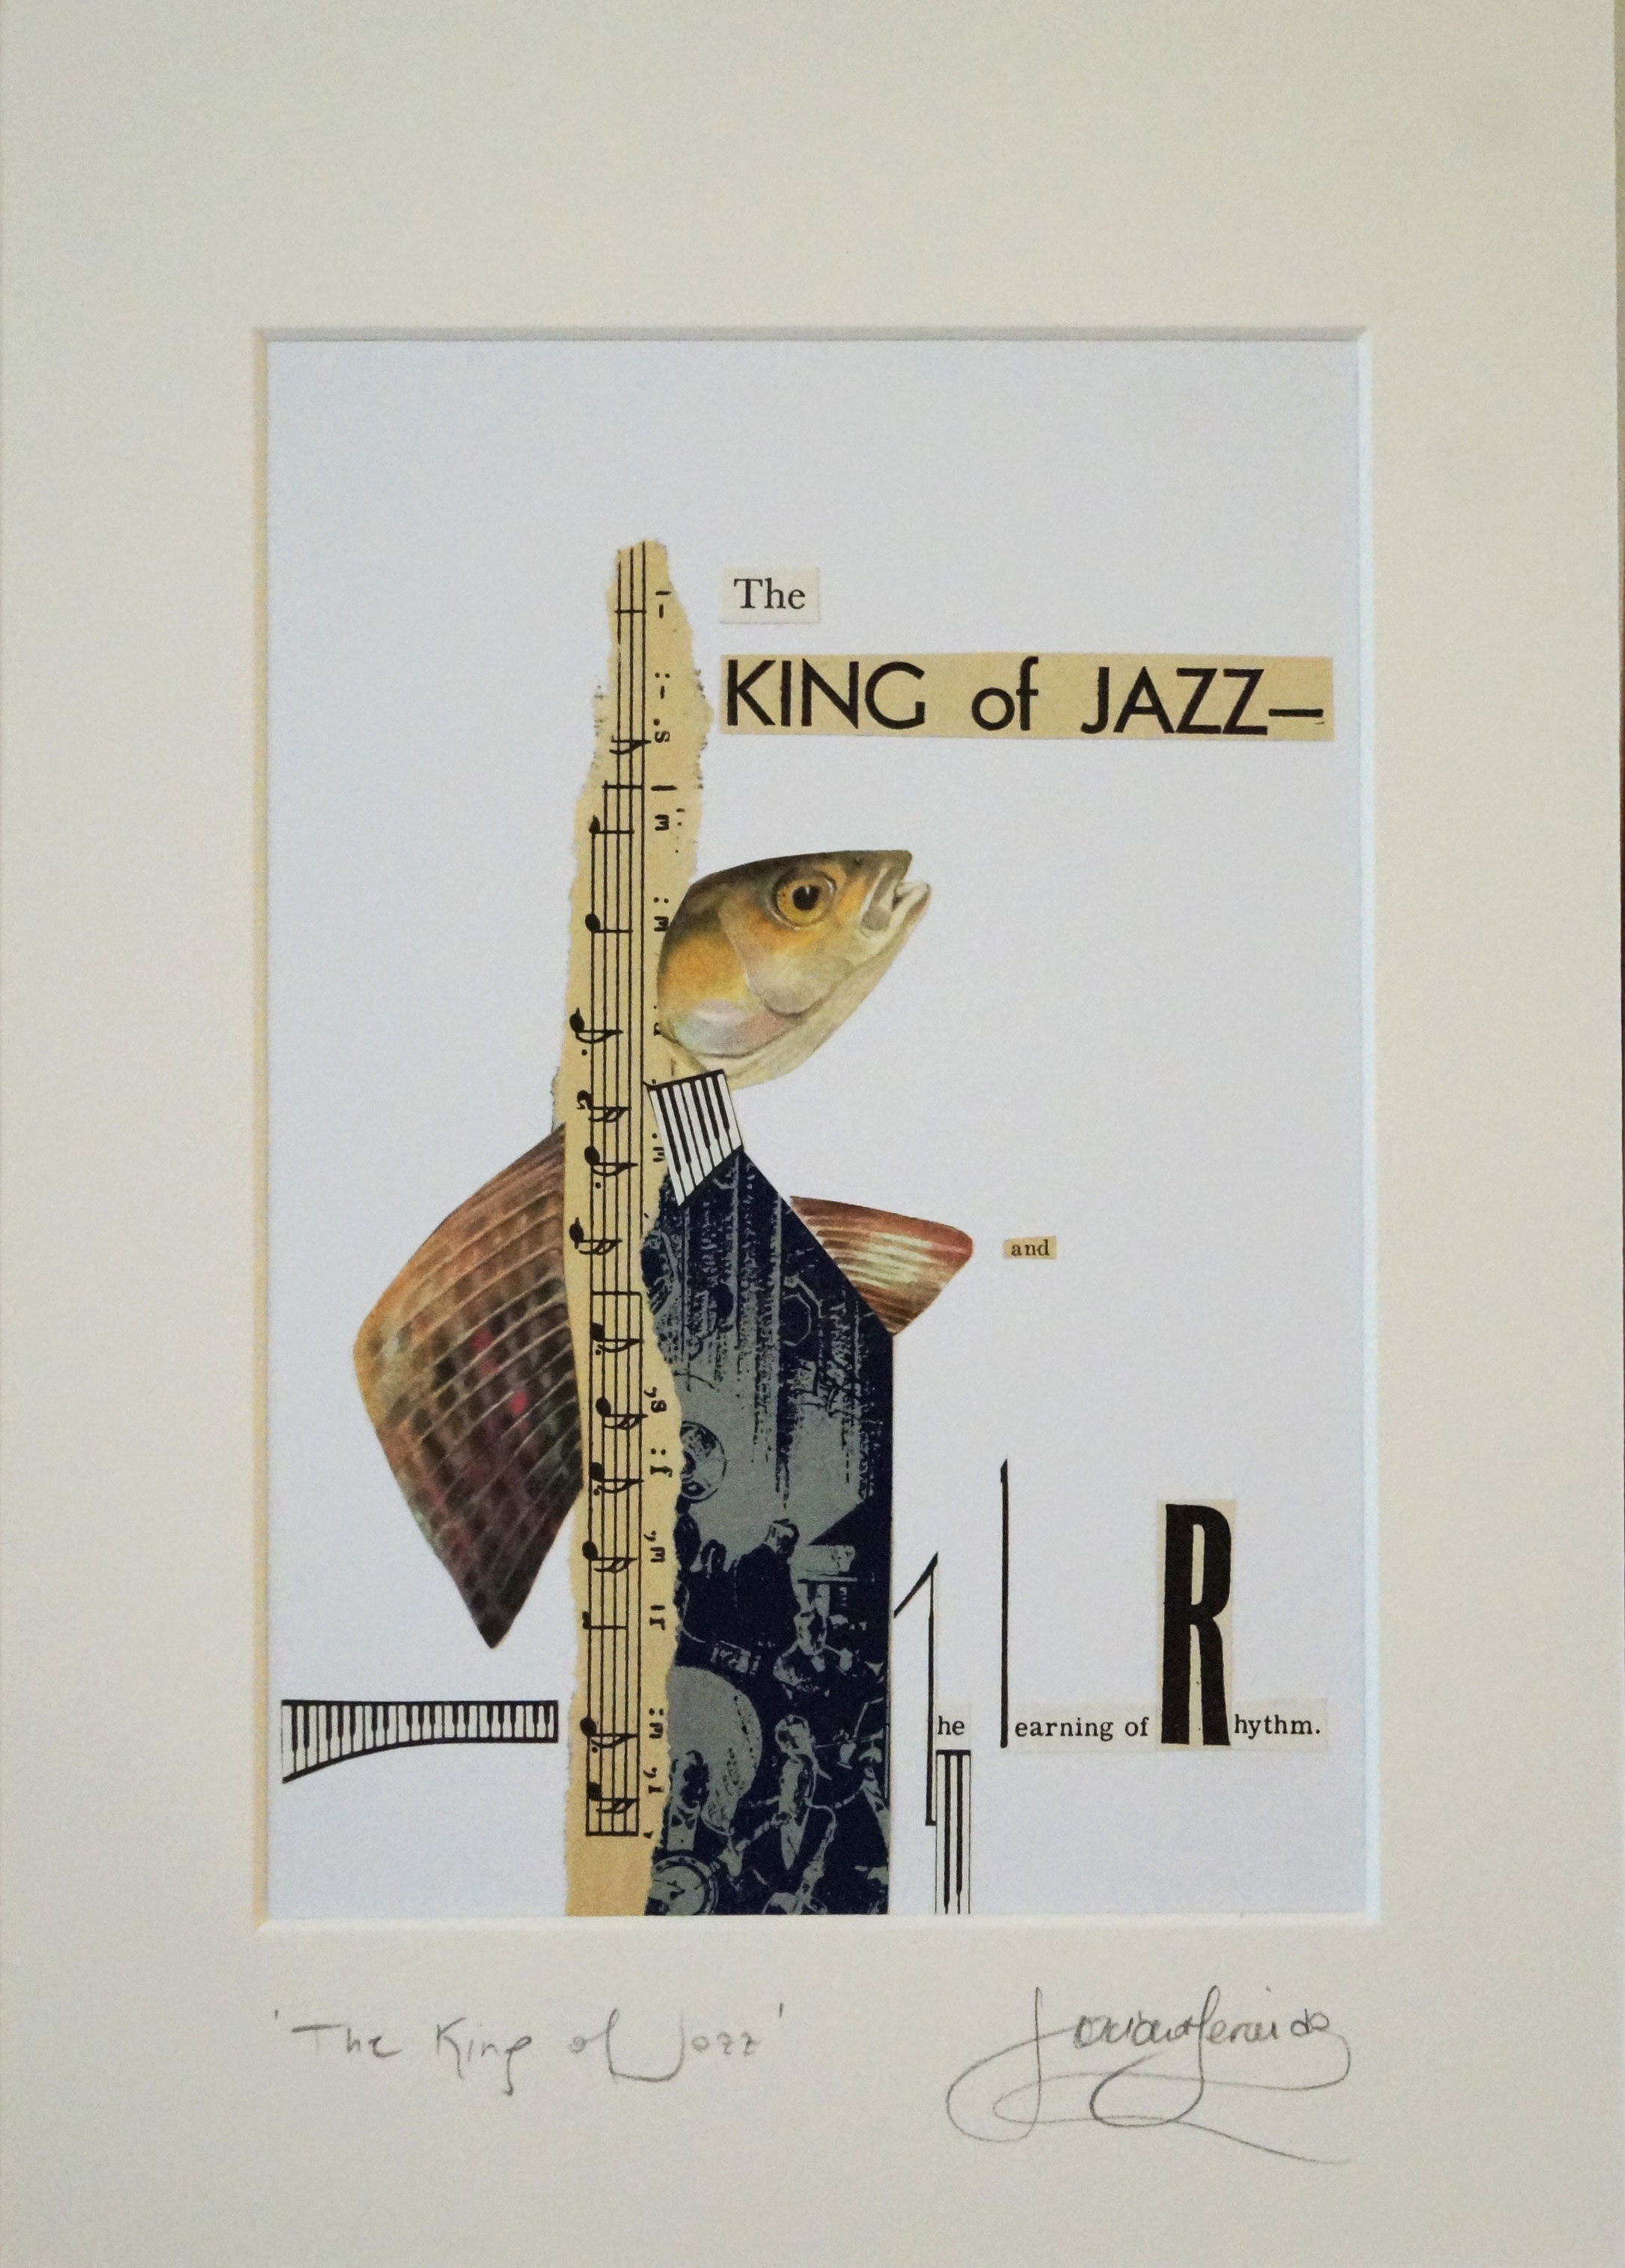 The King of Jazz